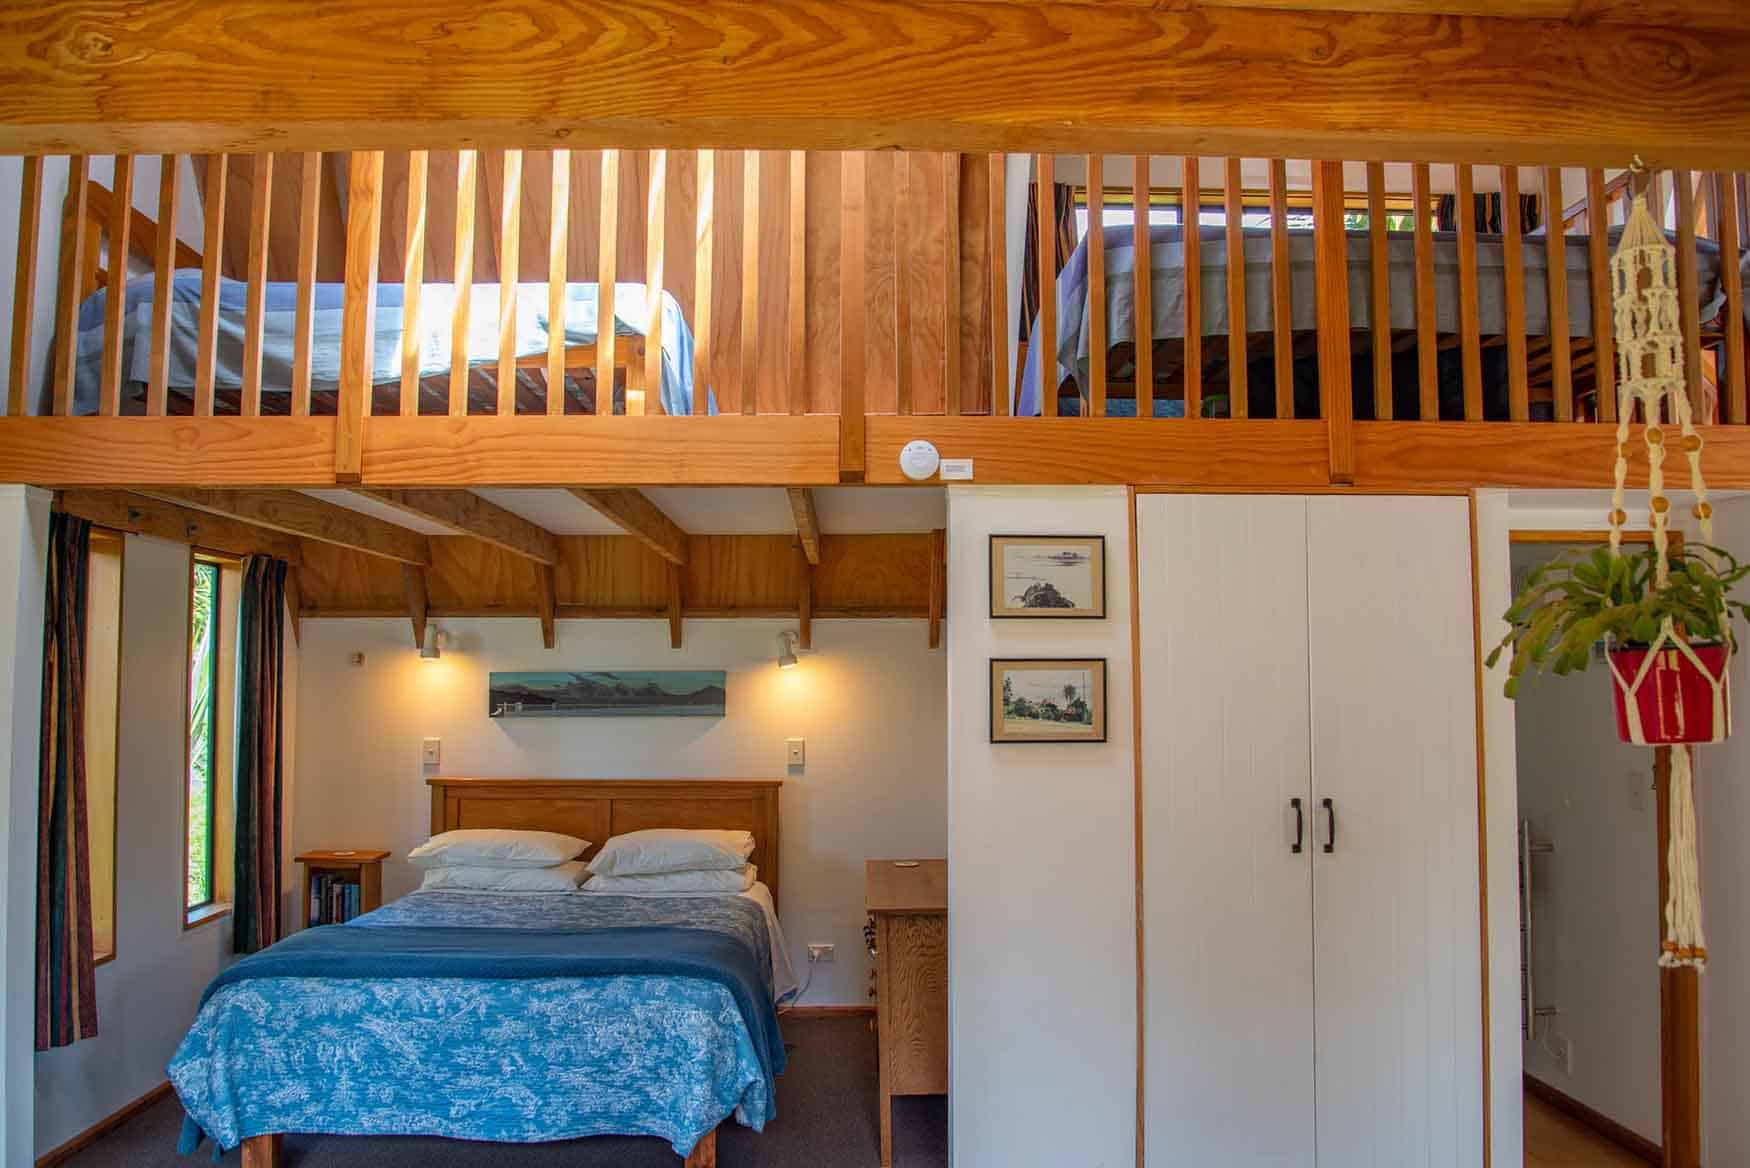 Beds in Fantail cottage accommodation in Dunedin